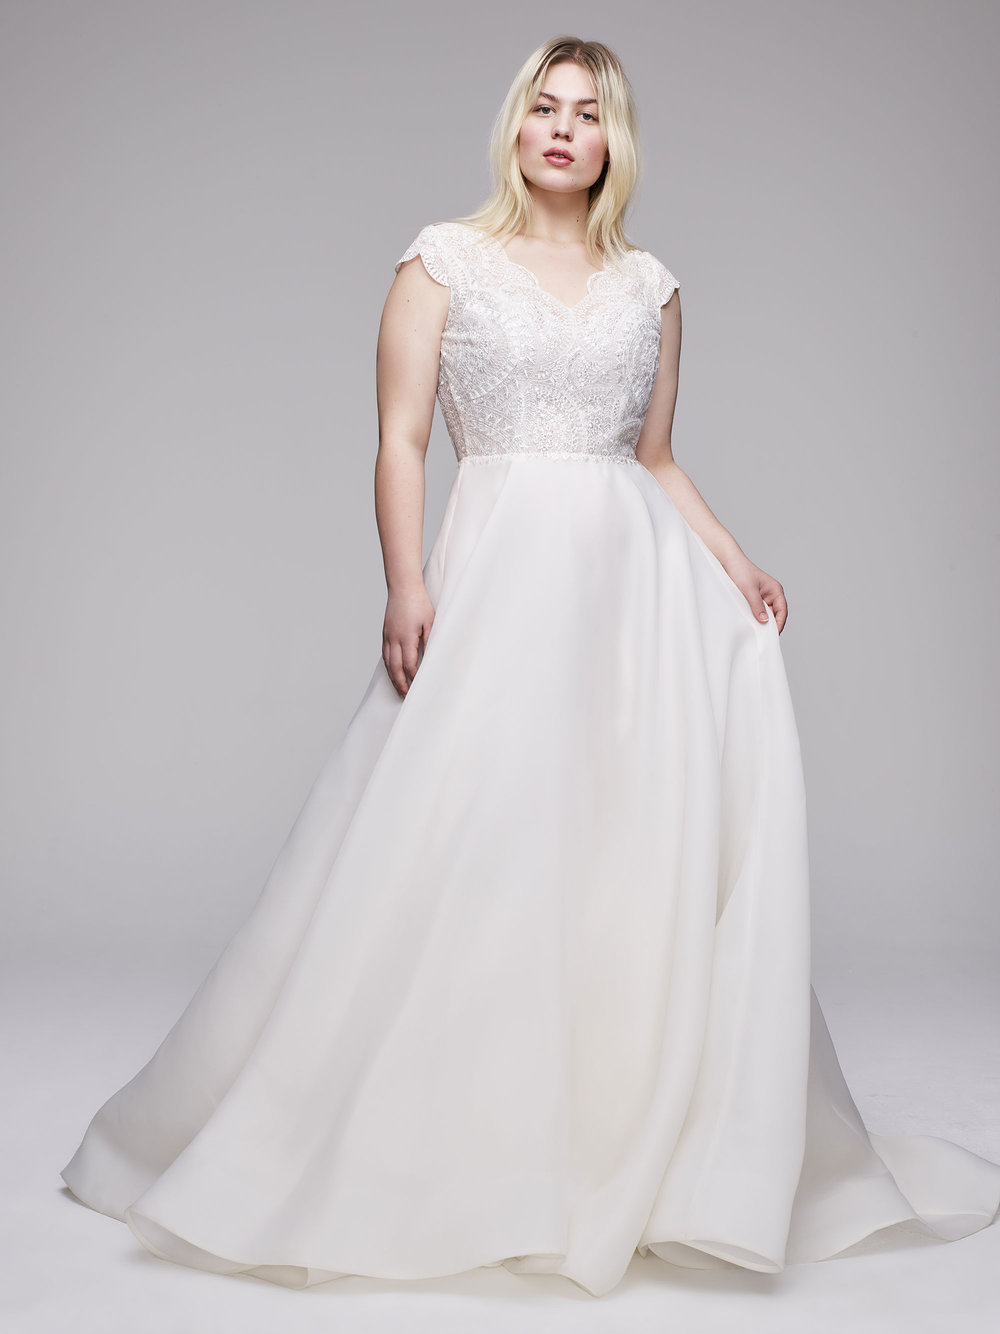 Plus Size Designer Wedding Gowns from Curve Couture by Anne Barge